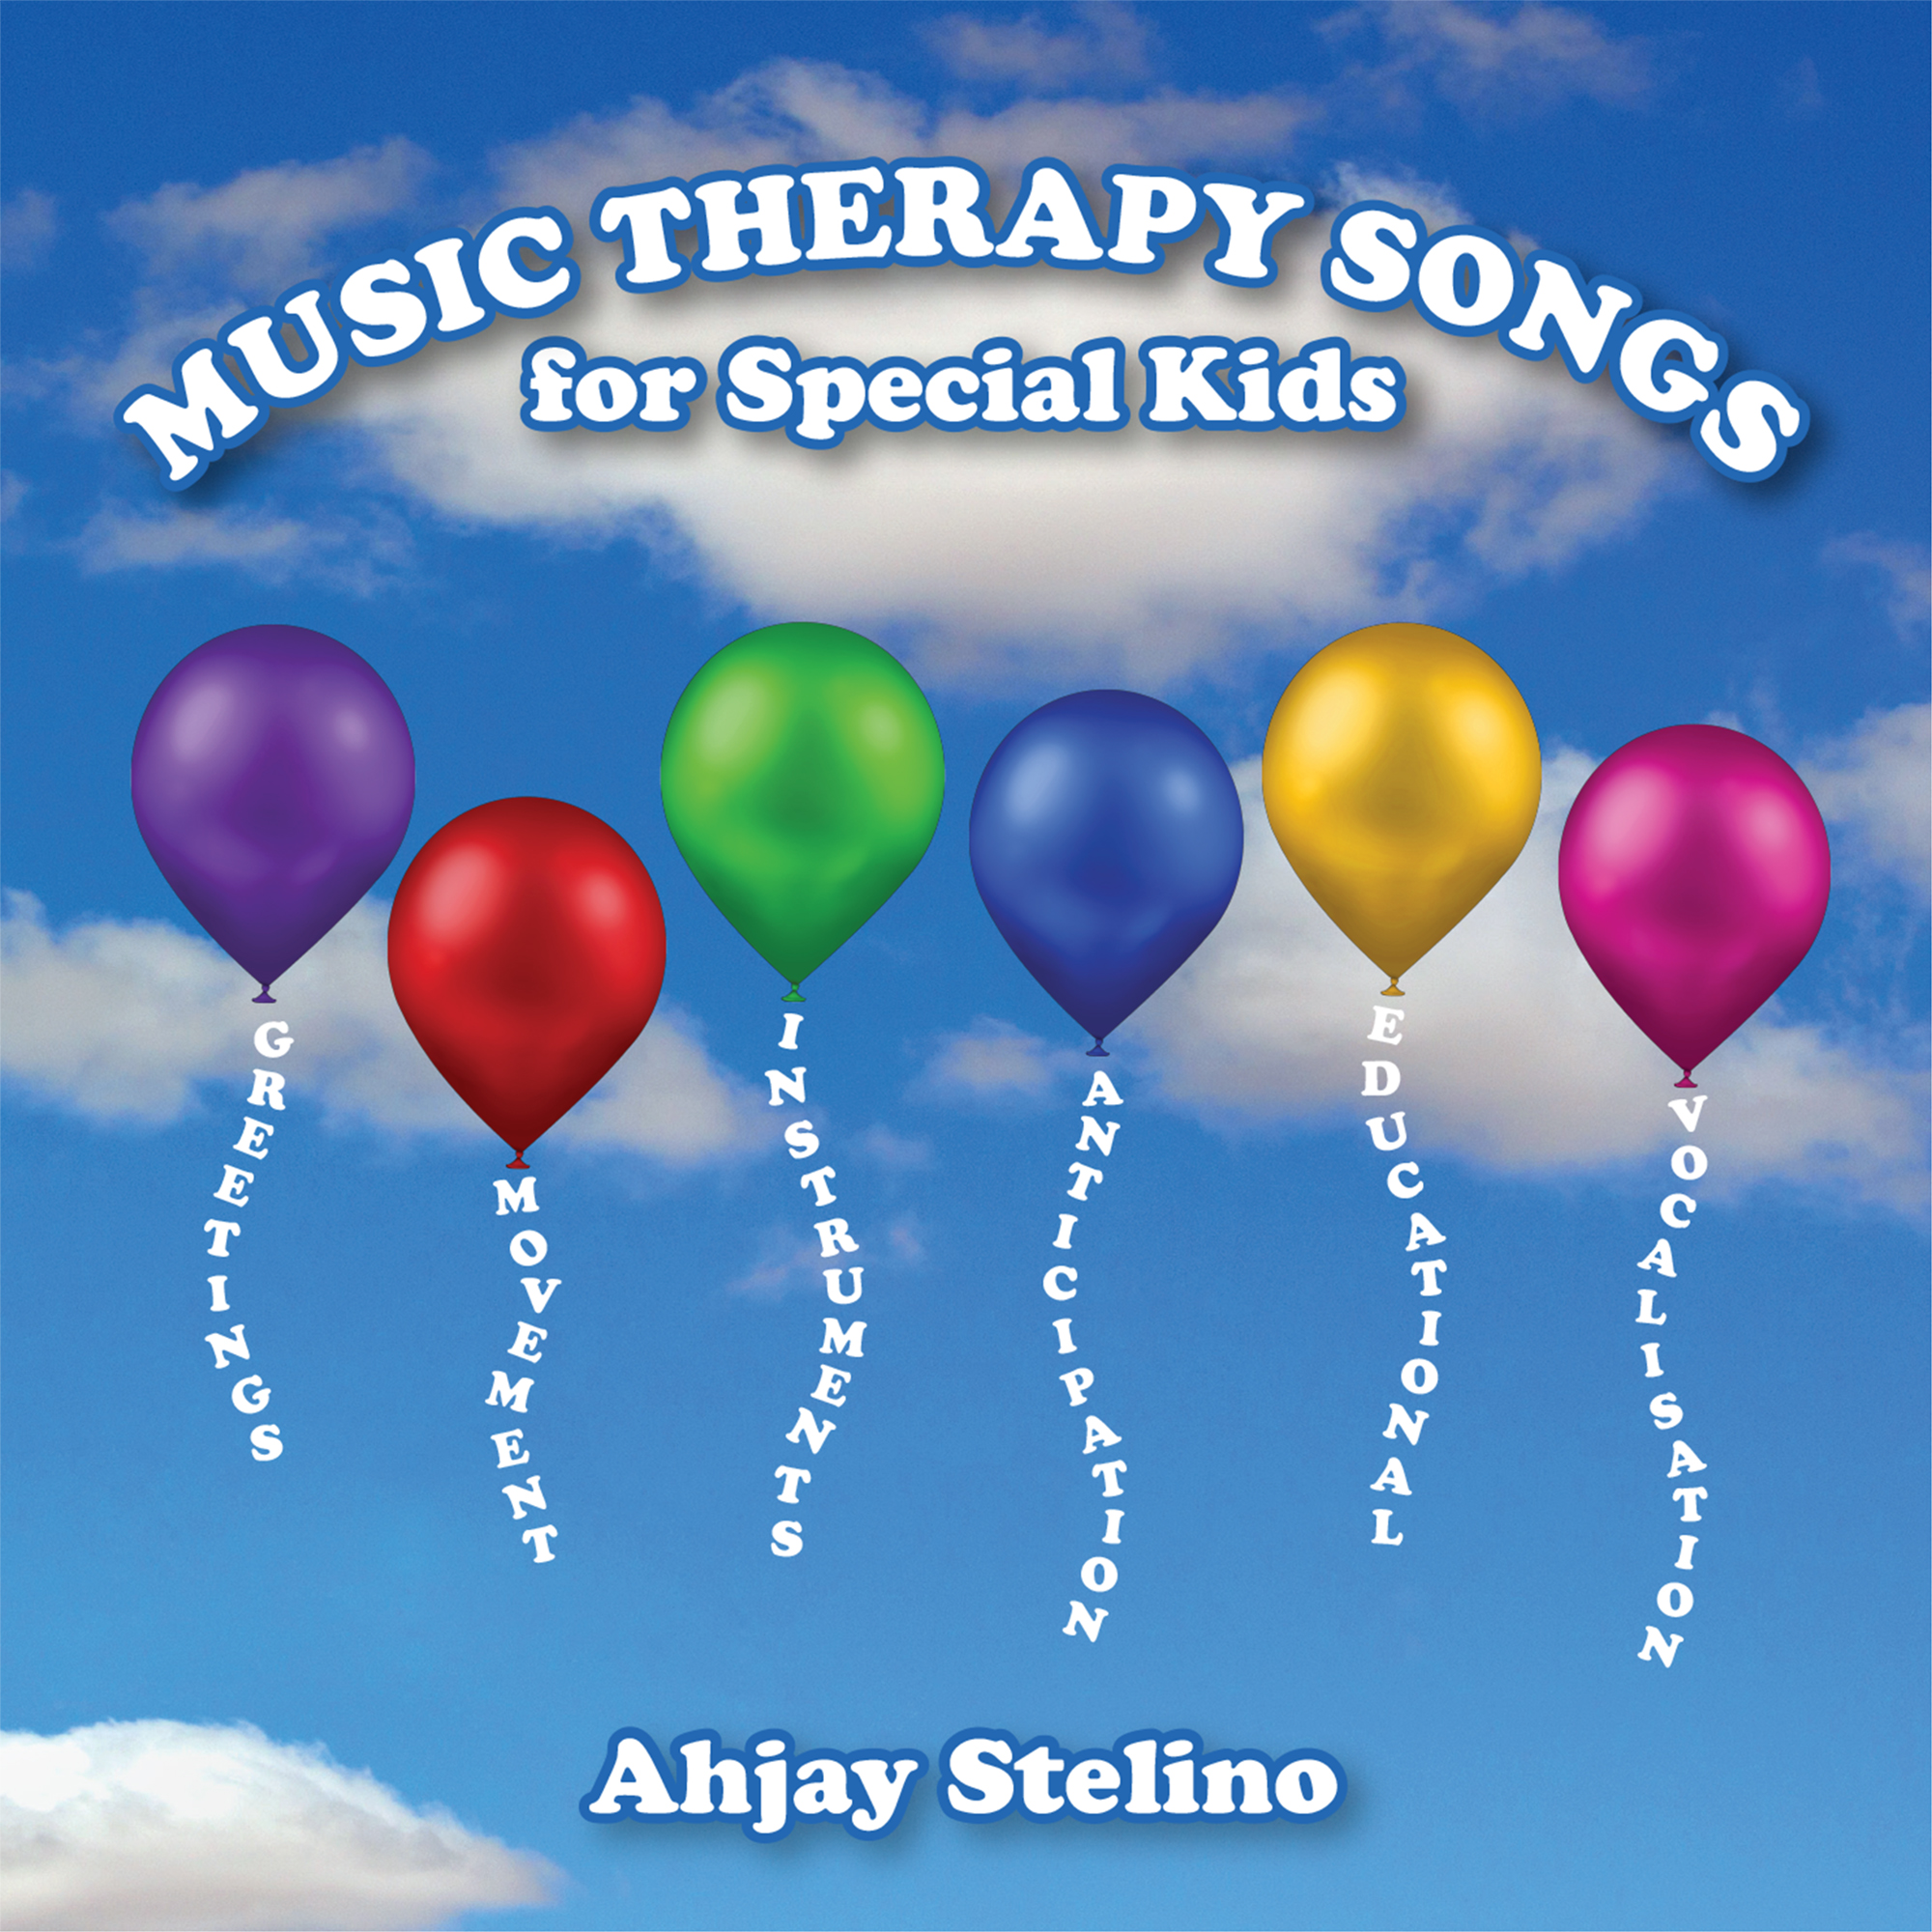 Music Therapy Songs Ahjay Stelino